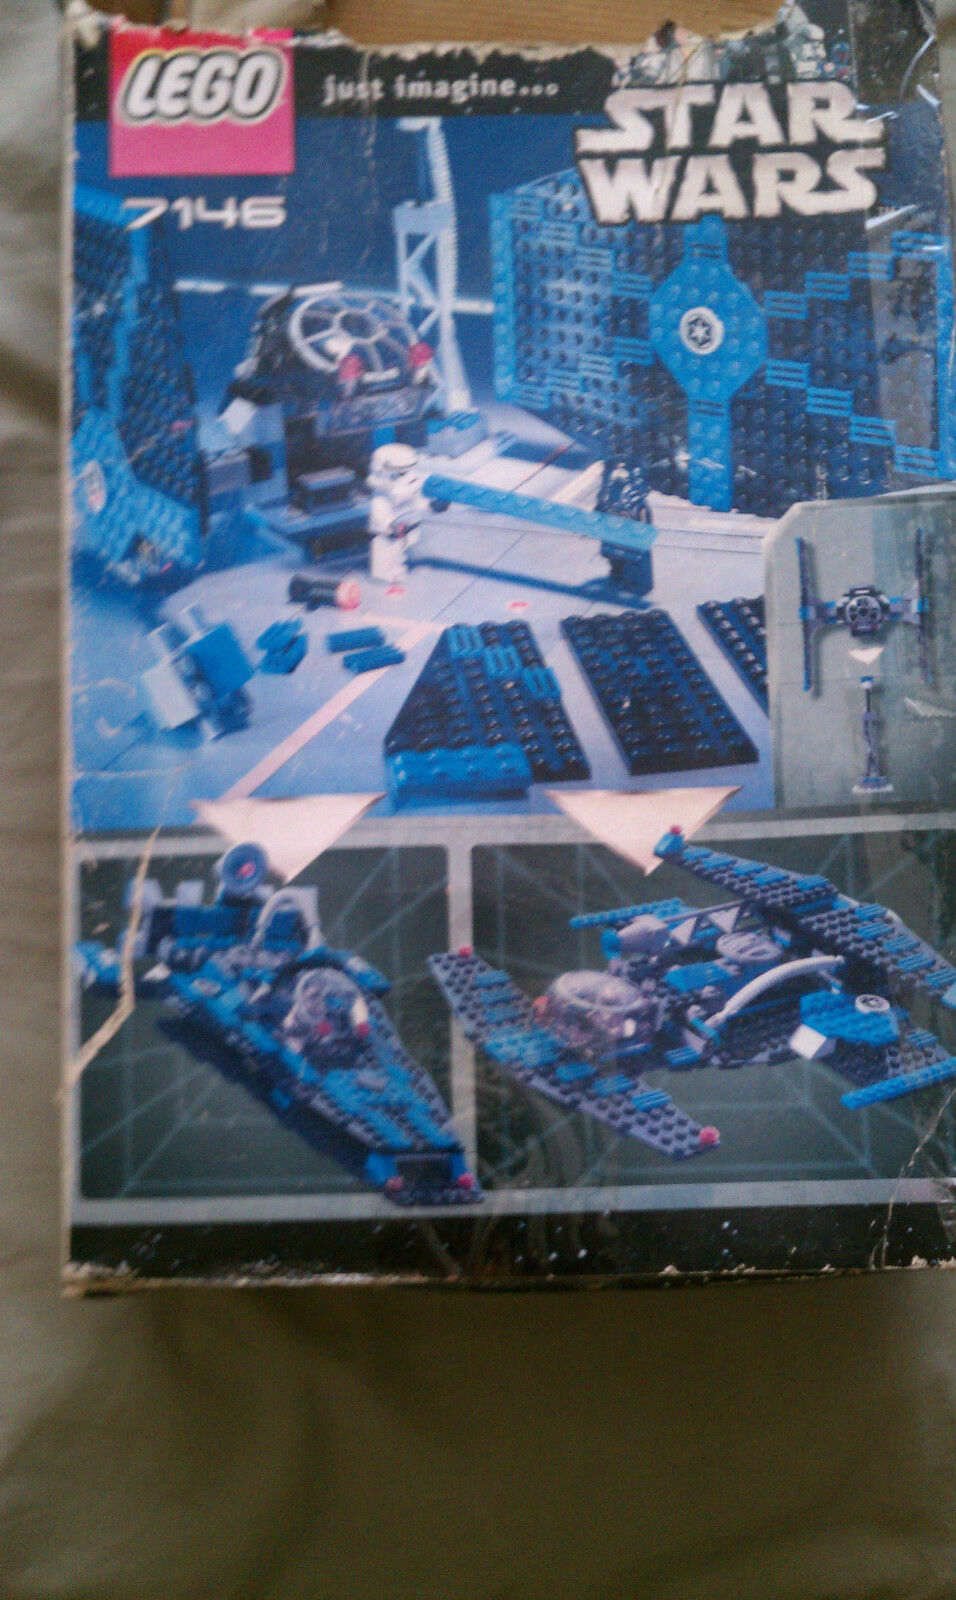 Lego Star Wars Episode IV-VI TIE Fighter (7146) With Life on Mars 7310 Mono jet